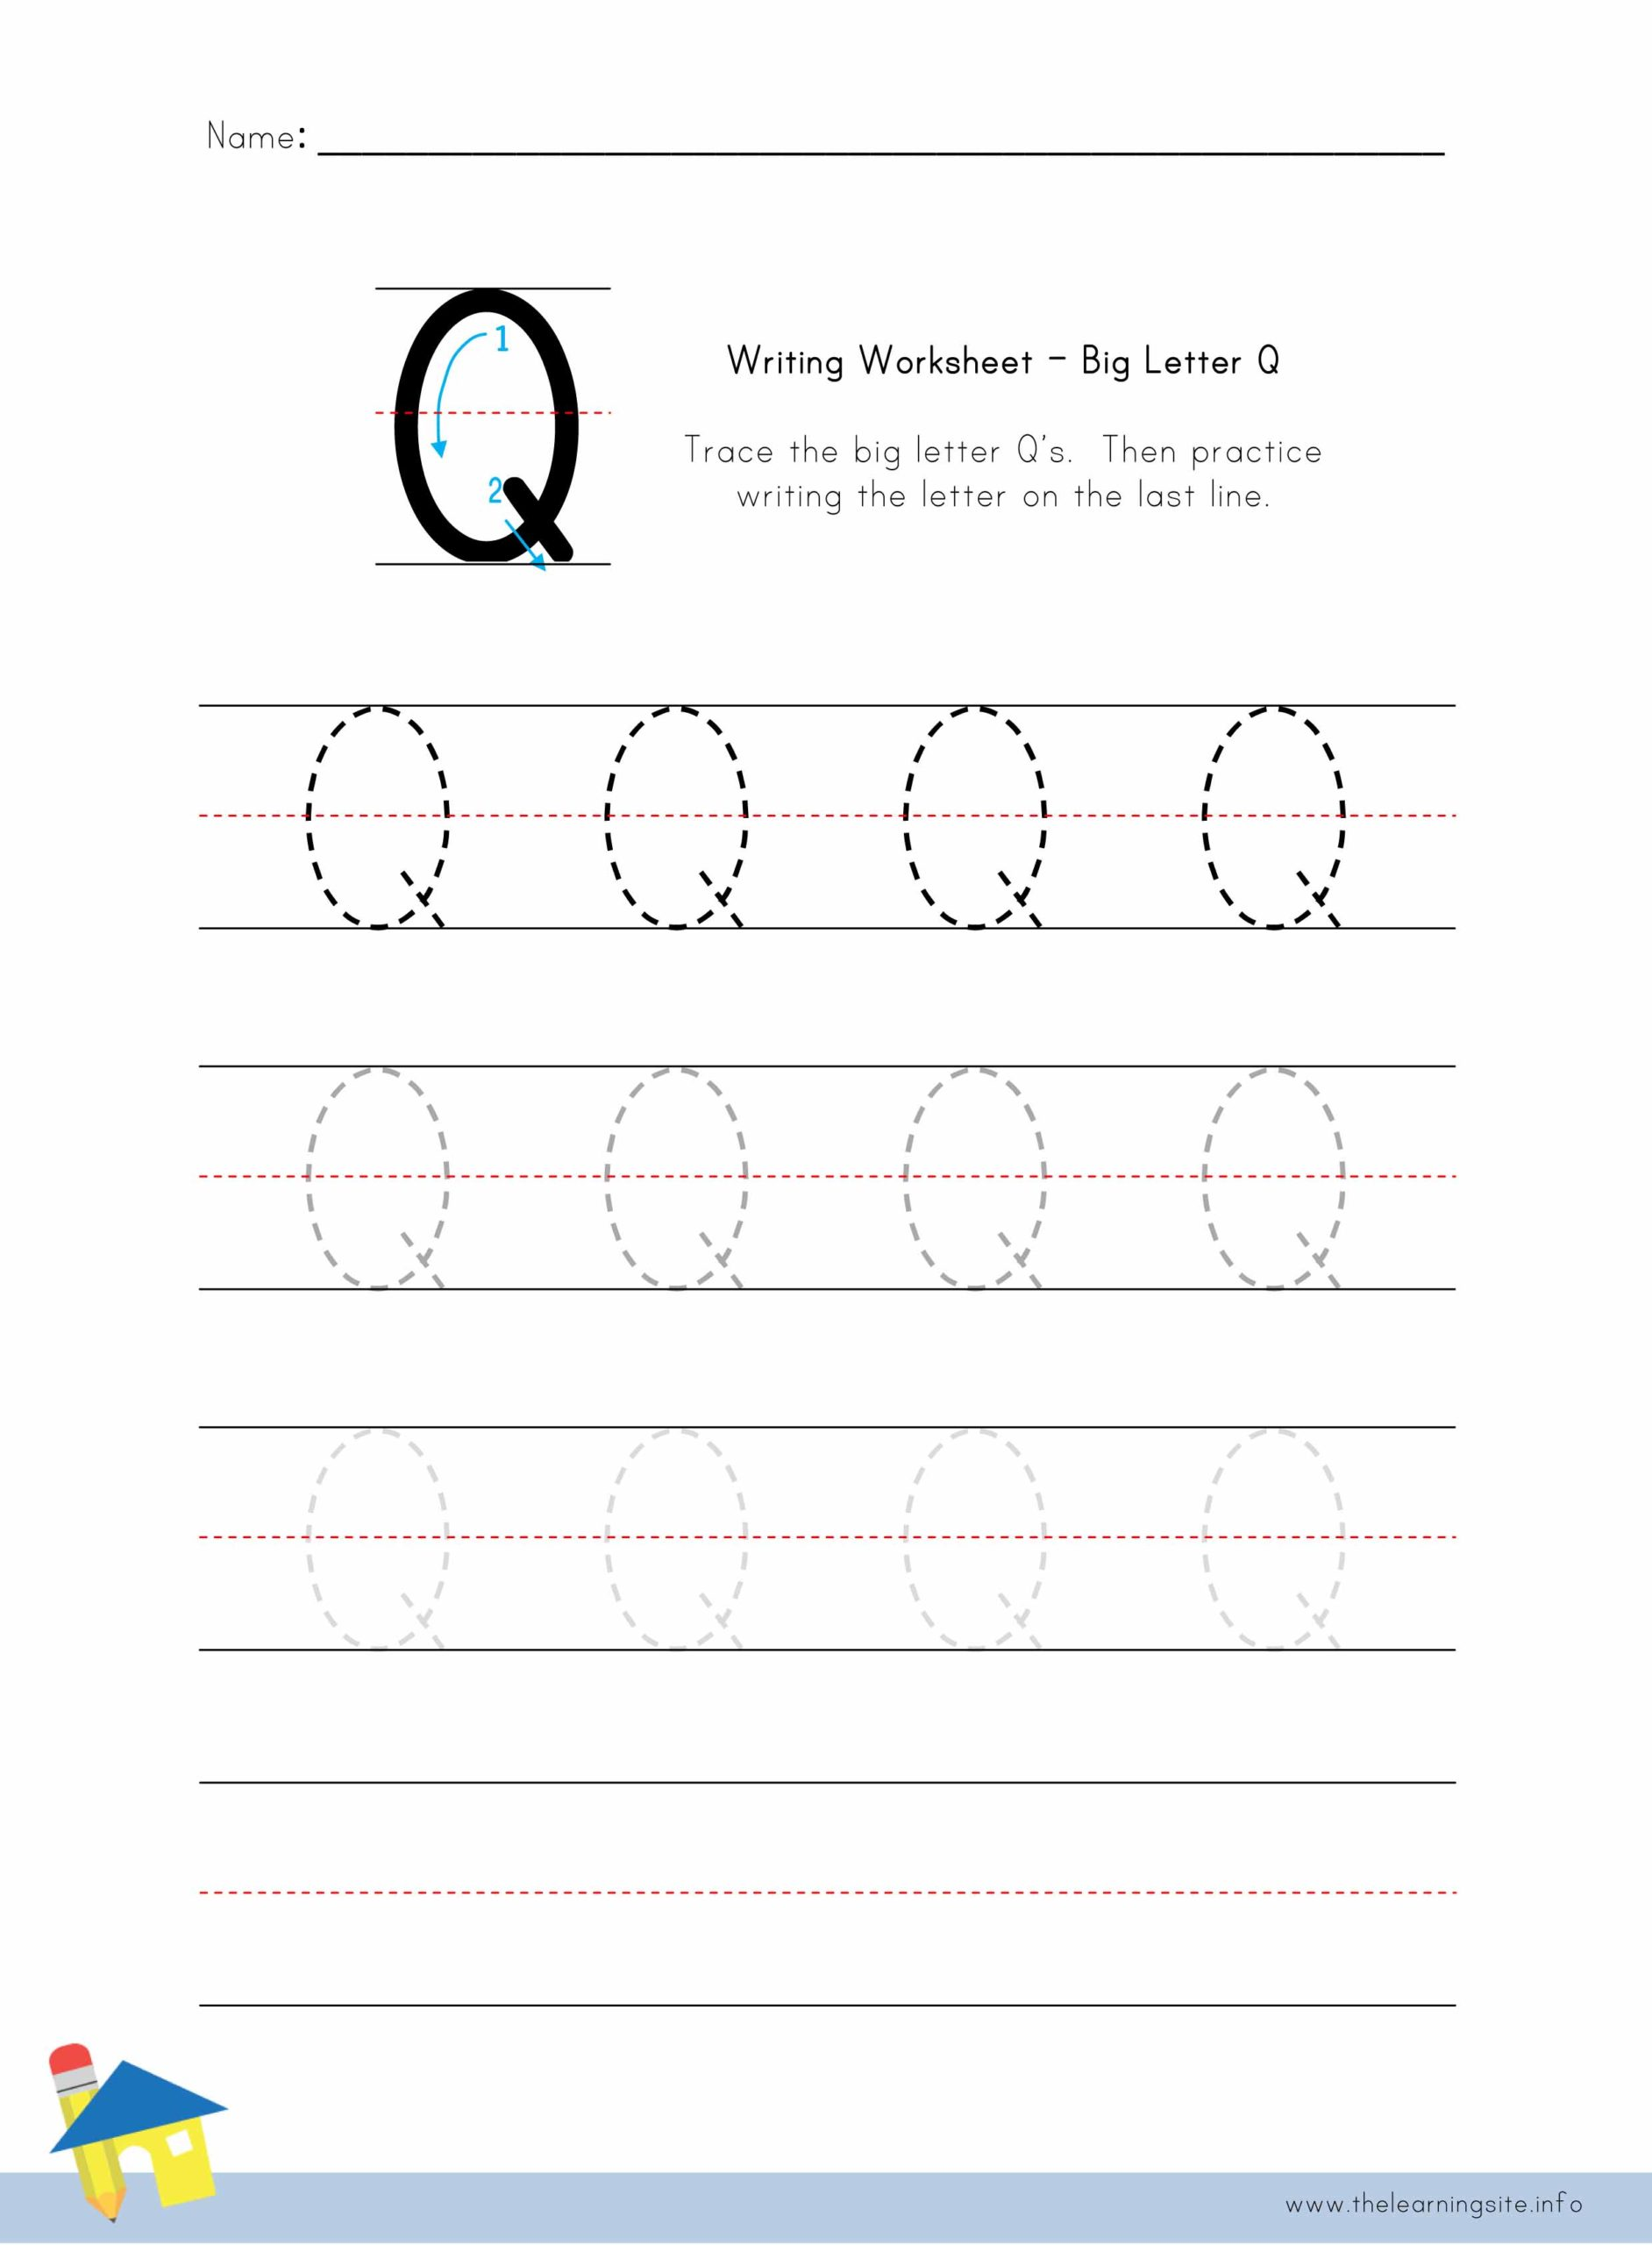 Big Letter Q Writing Worksheet The Learning Site